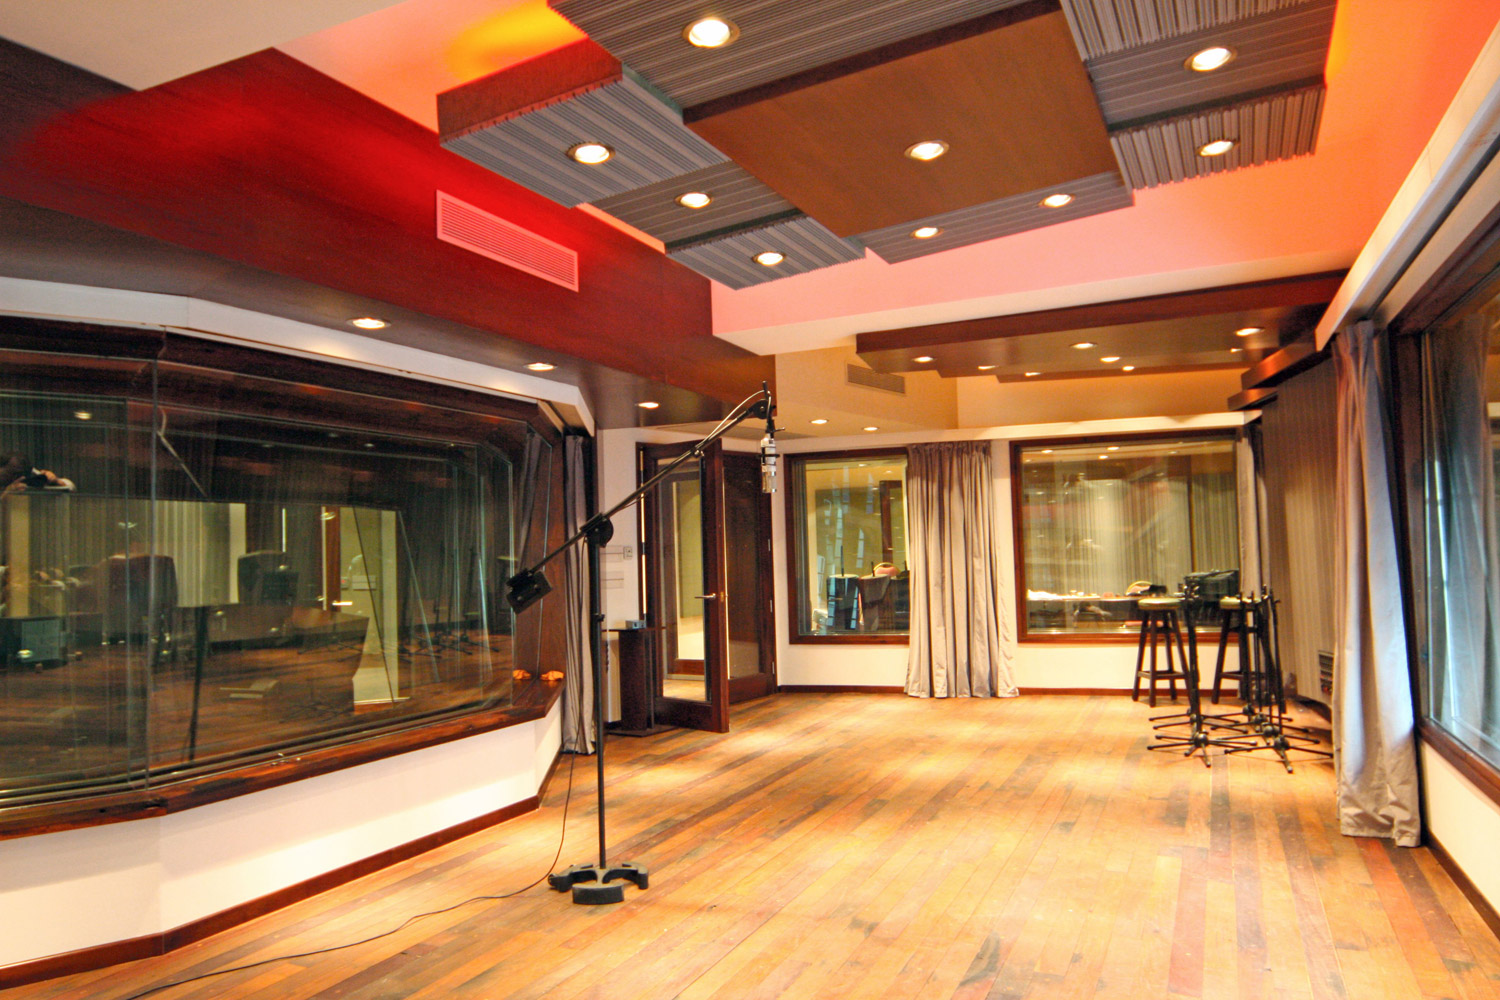 Vivace Music Studio in Montevideo, Uruguay. Professional recording studio designed and built by WSDG. Project manager WSDG partner Sergio Molho, and Representative Gonzalo Ruiz. Live Room A-2